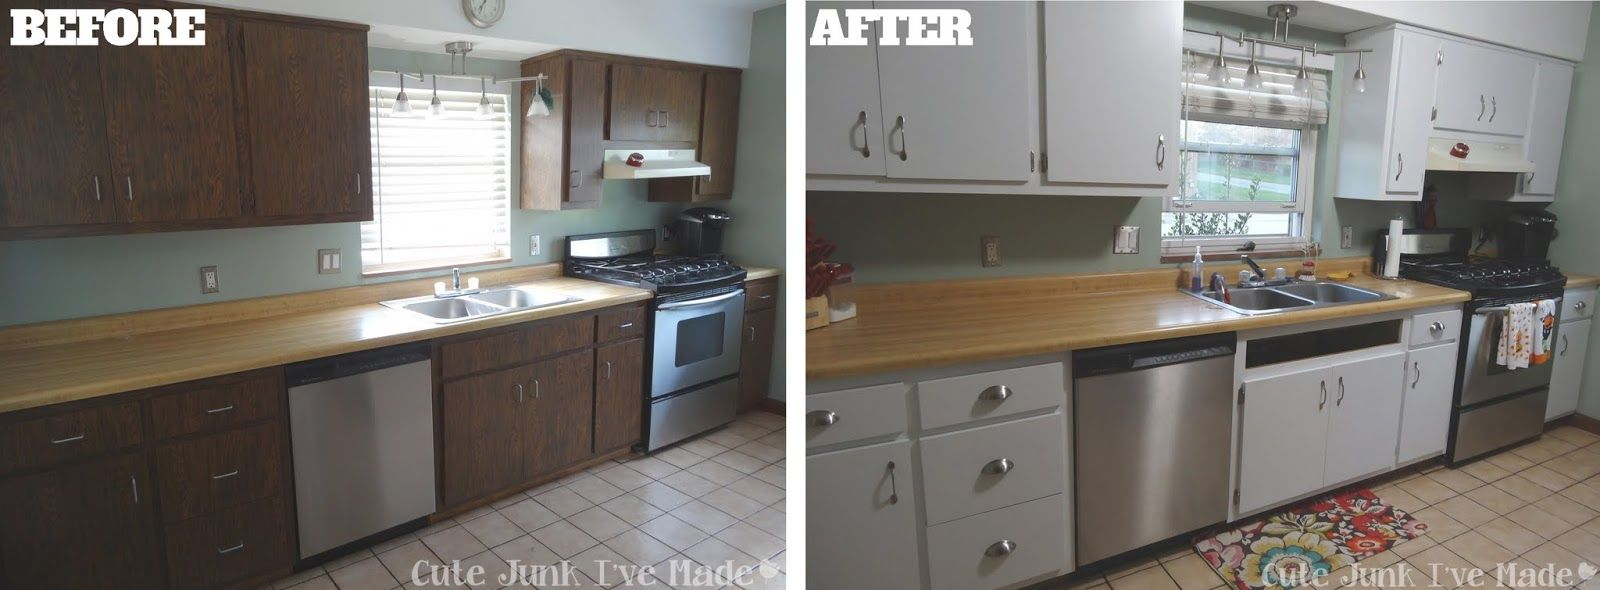 how to paint laminate cabinets - before & after- use old kitchen